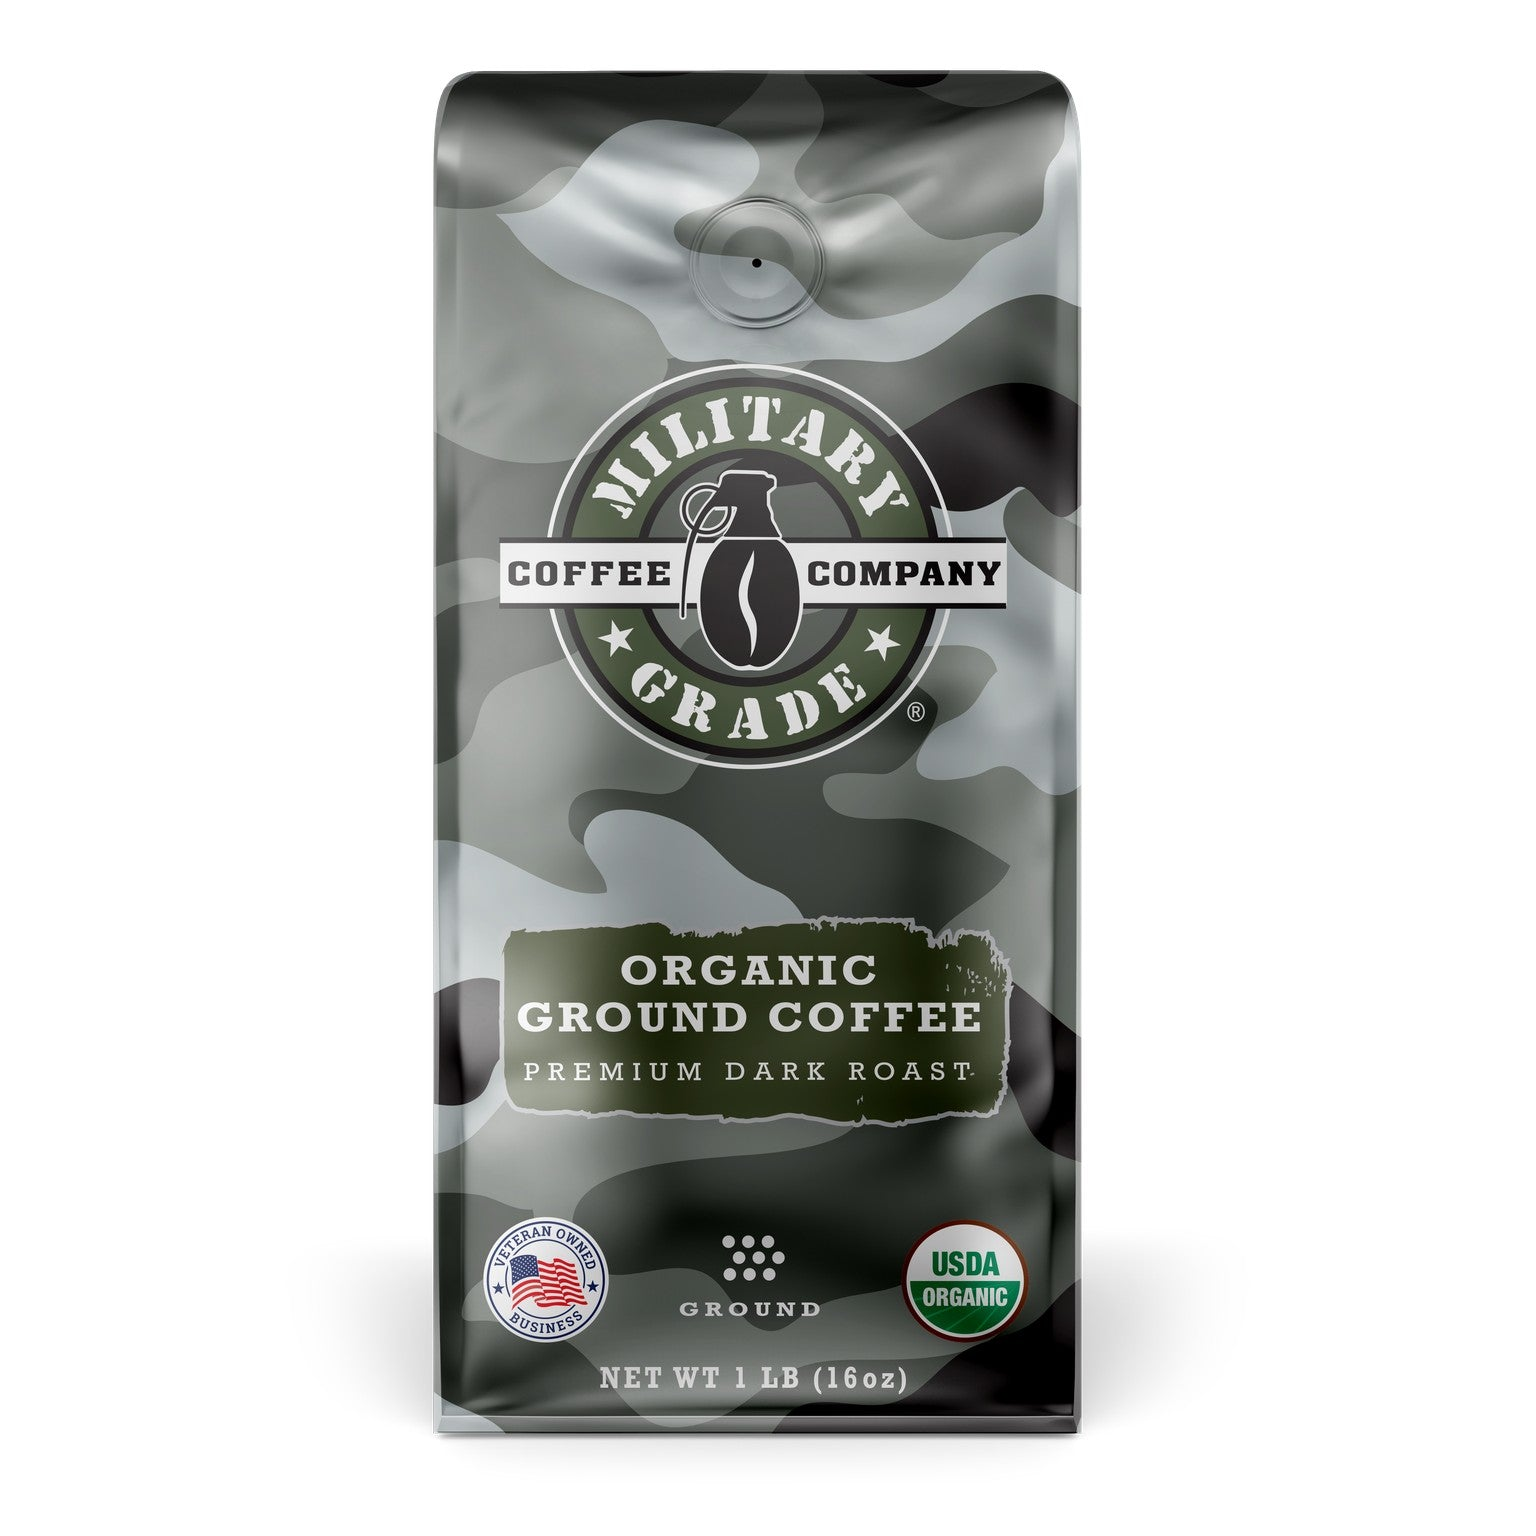 Military Grade Organic Ground Coffee (12 or 16 oz.)